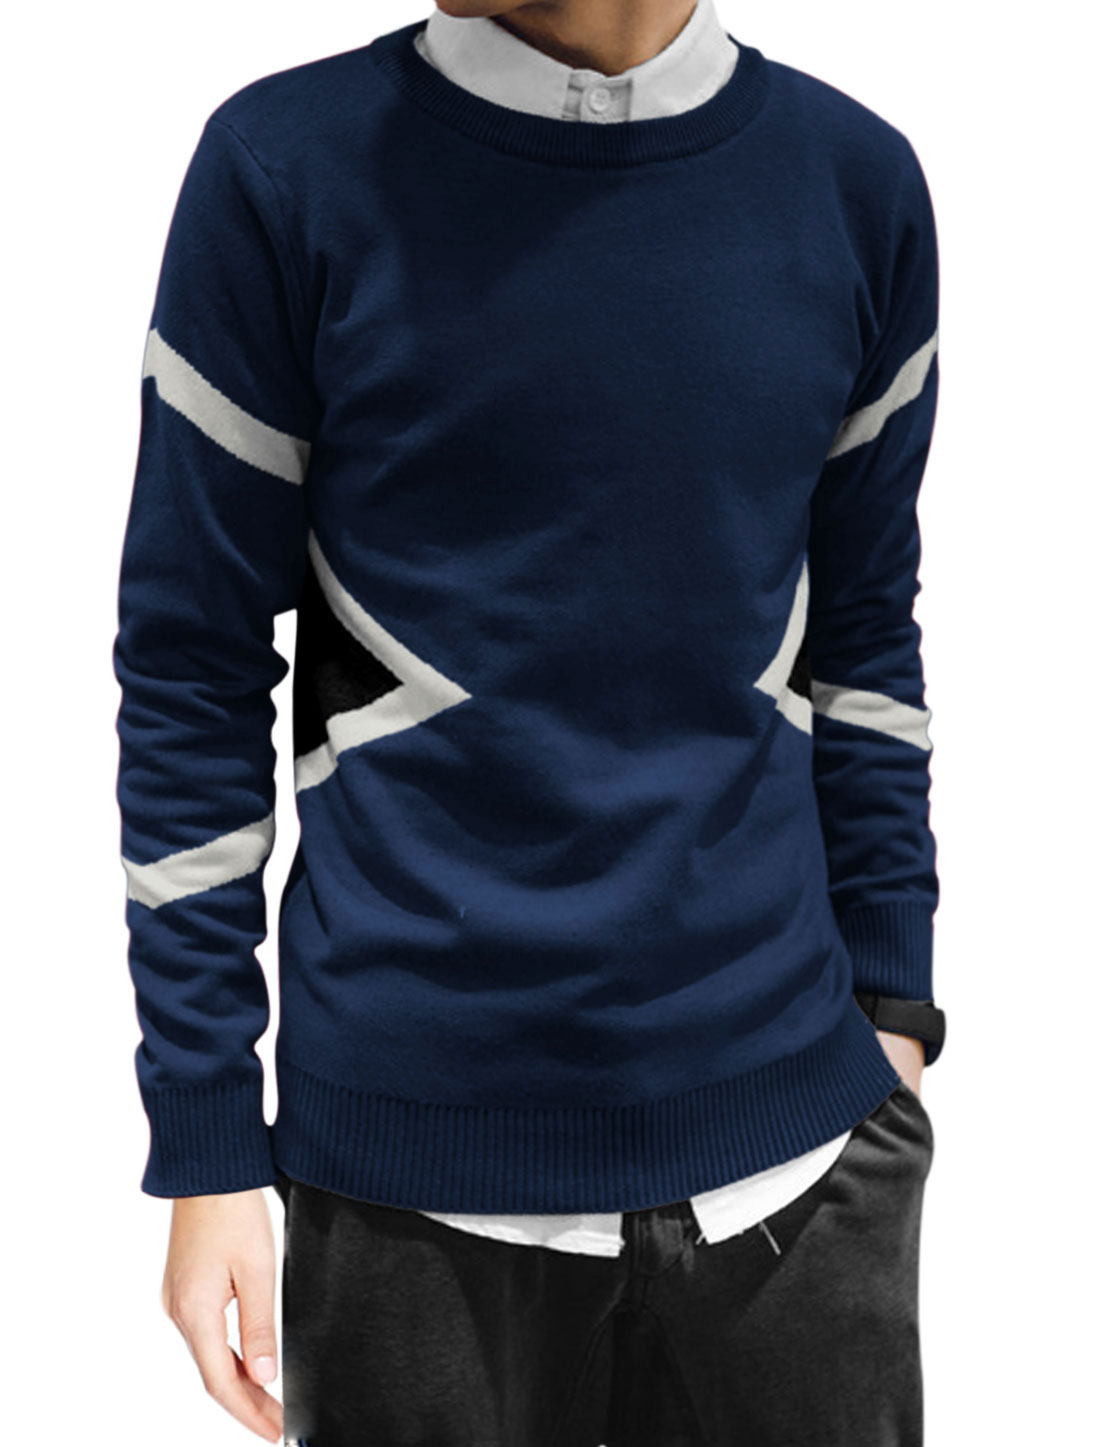 Men Long Sleeve Round Neck Slim Fit Casual Pullover Knit Shirt Navy Blue M